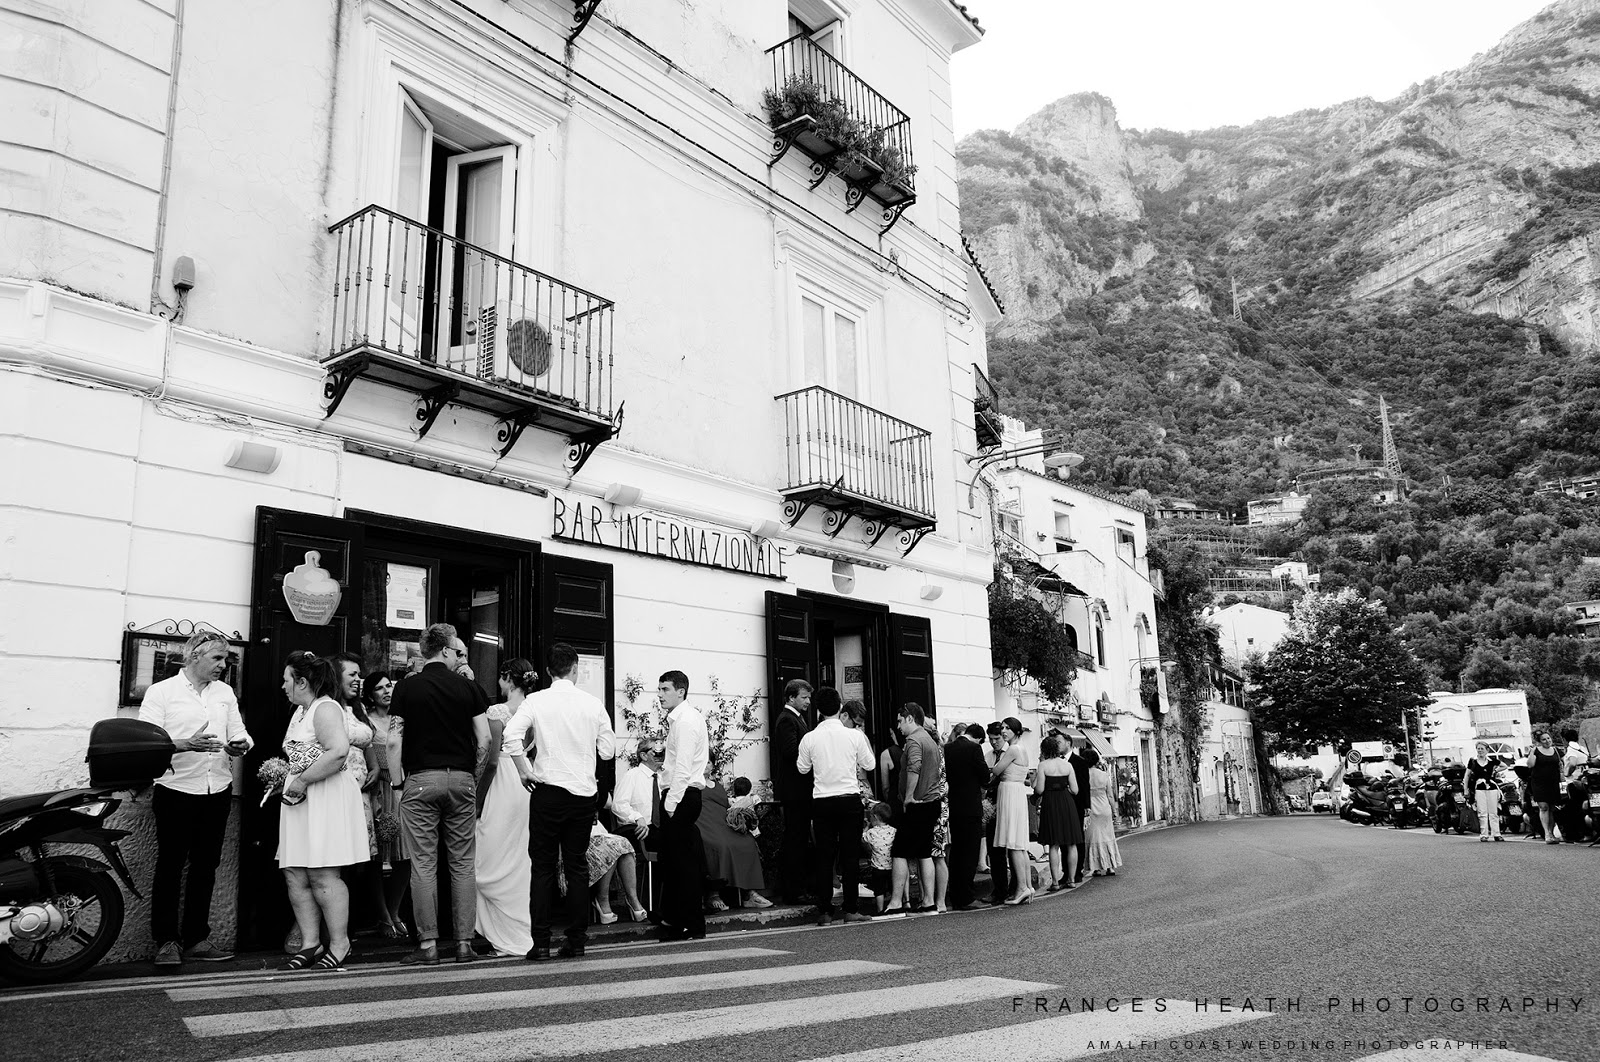 Wedding reception at bar Internazionale in Positano